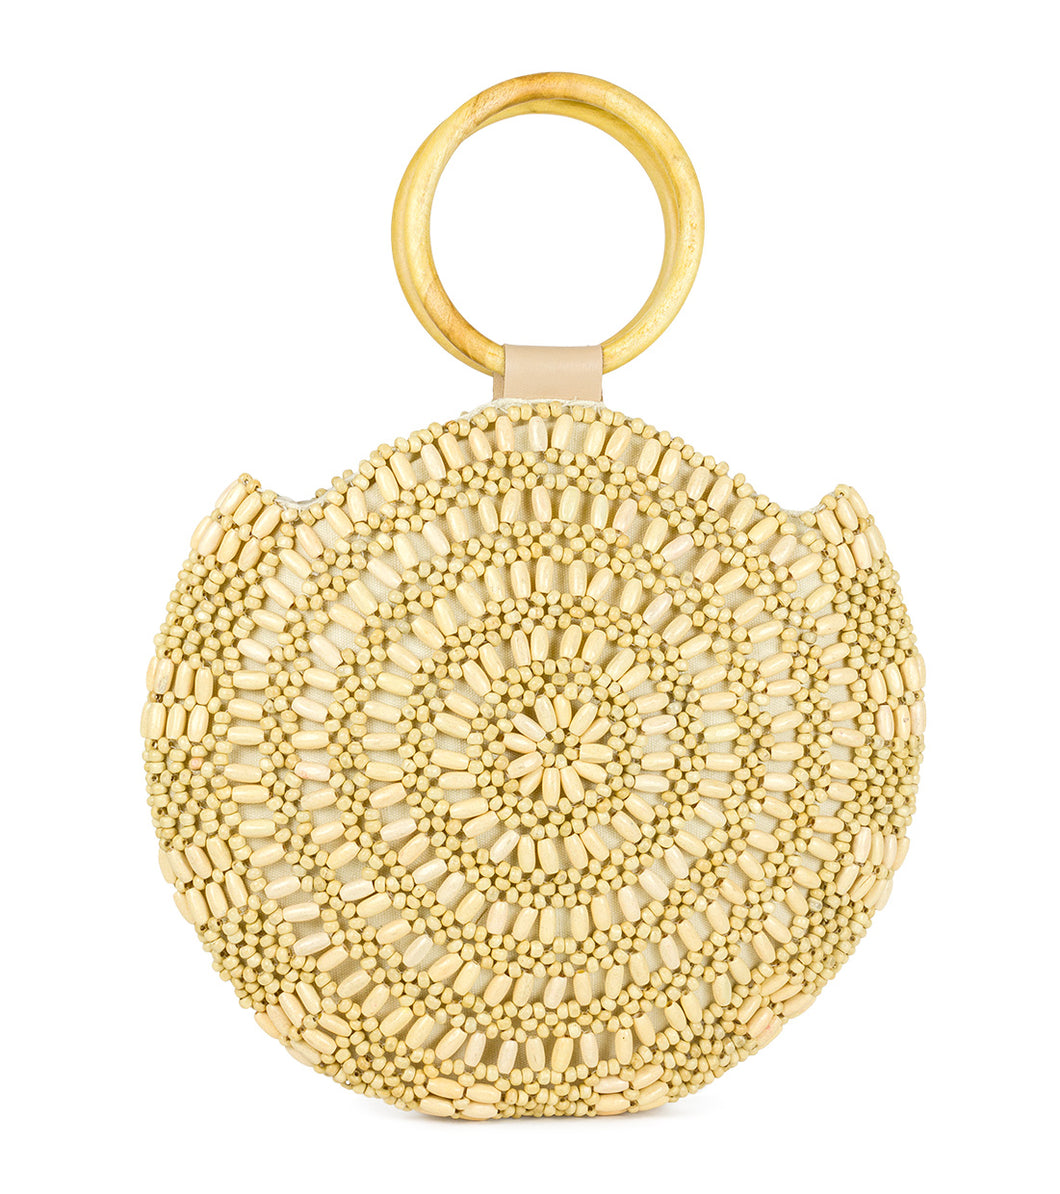 Beaded Circle Bag with Wooden Handle - Just Jamie